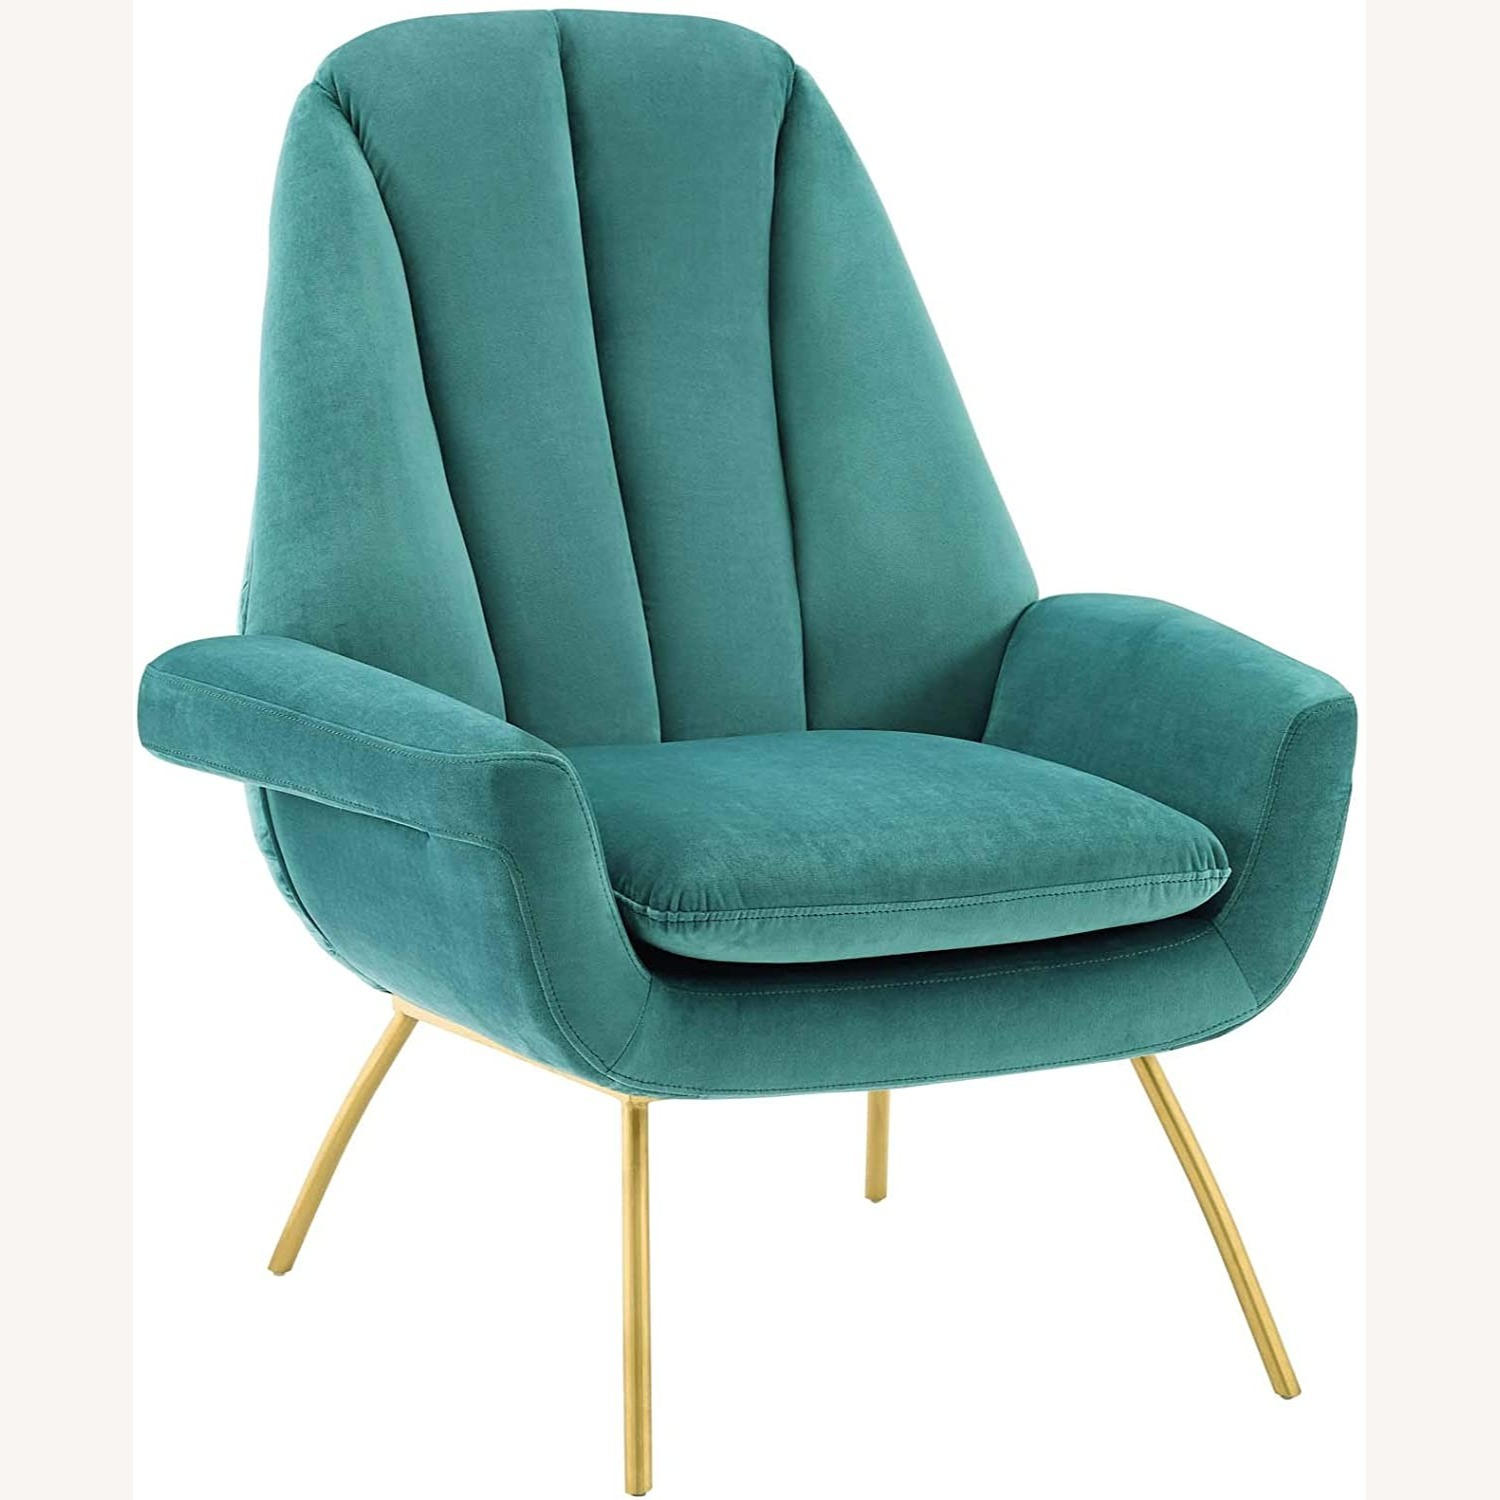 Accent Chair In Teal Velvet Upholstery Finish - image-0